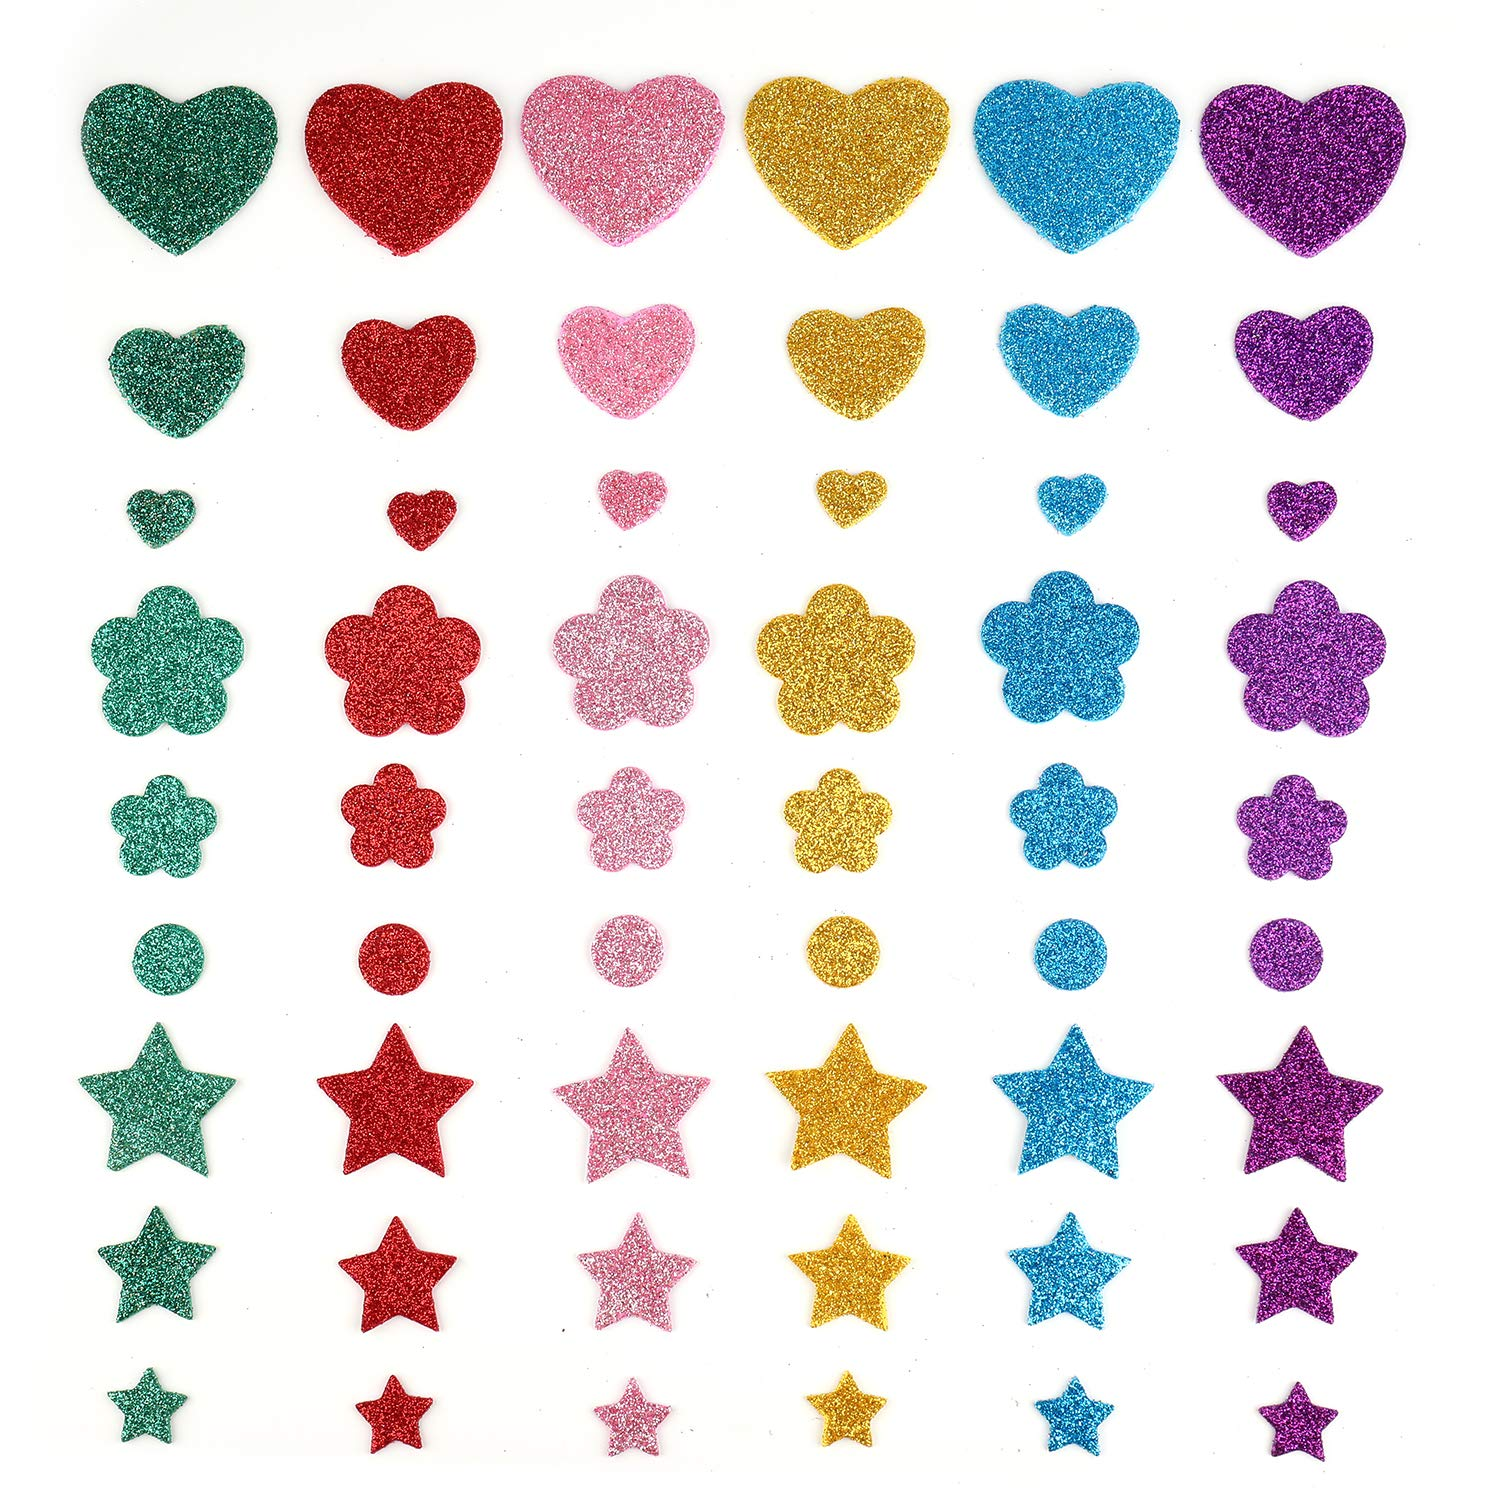 Heart and Flower Stickers for Kids Tosnail 280 Pieces Colorful Glitter Foam Stickers Star Assorted 3 Styles